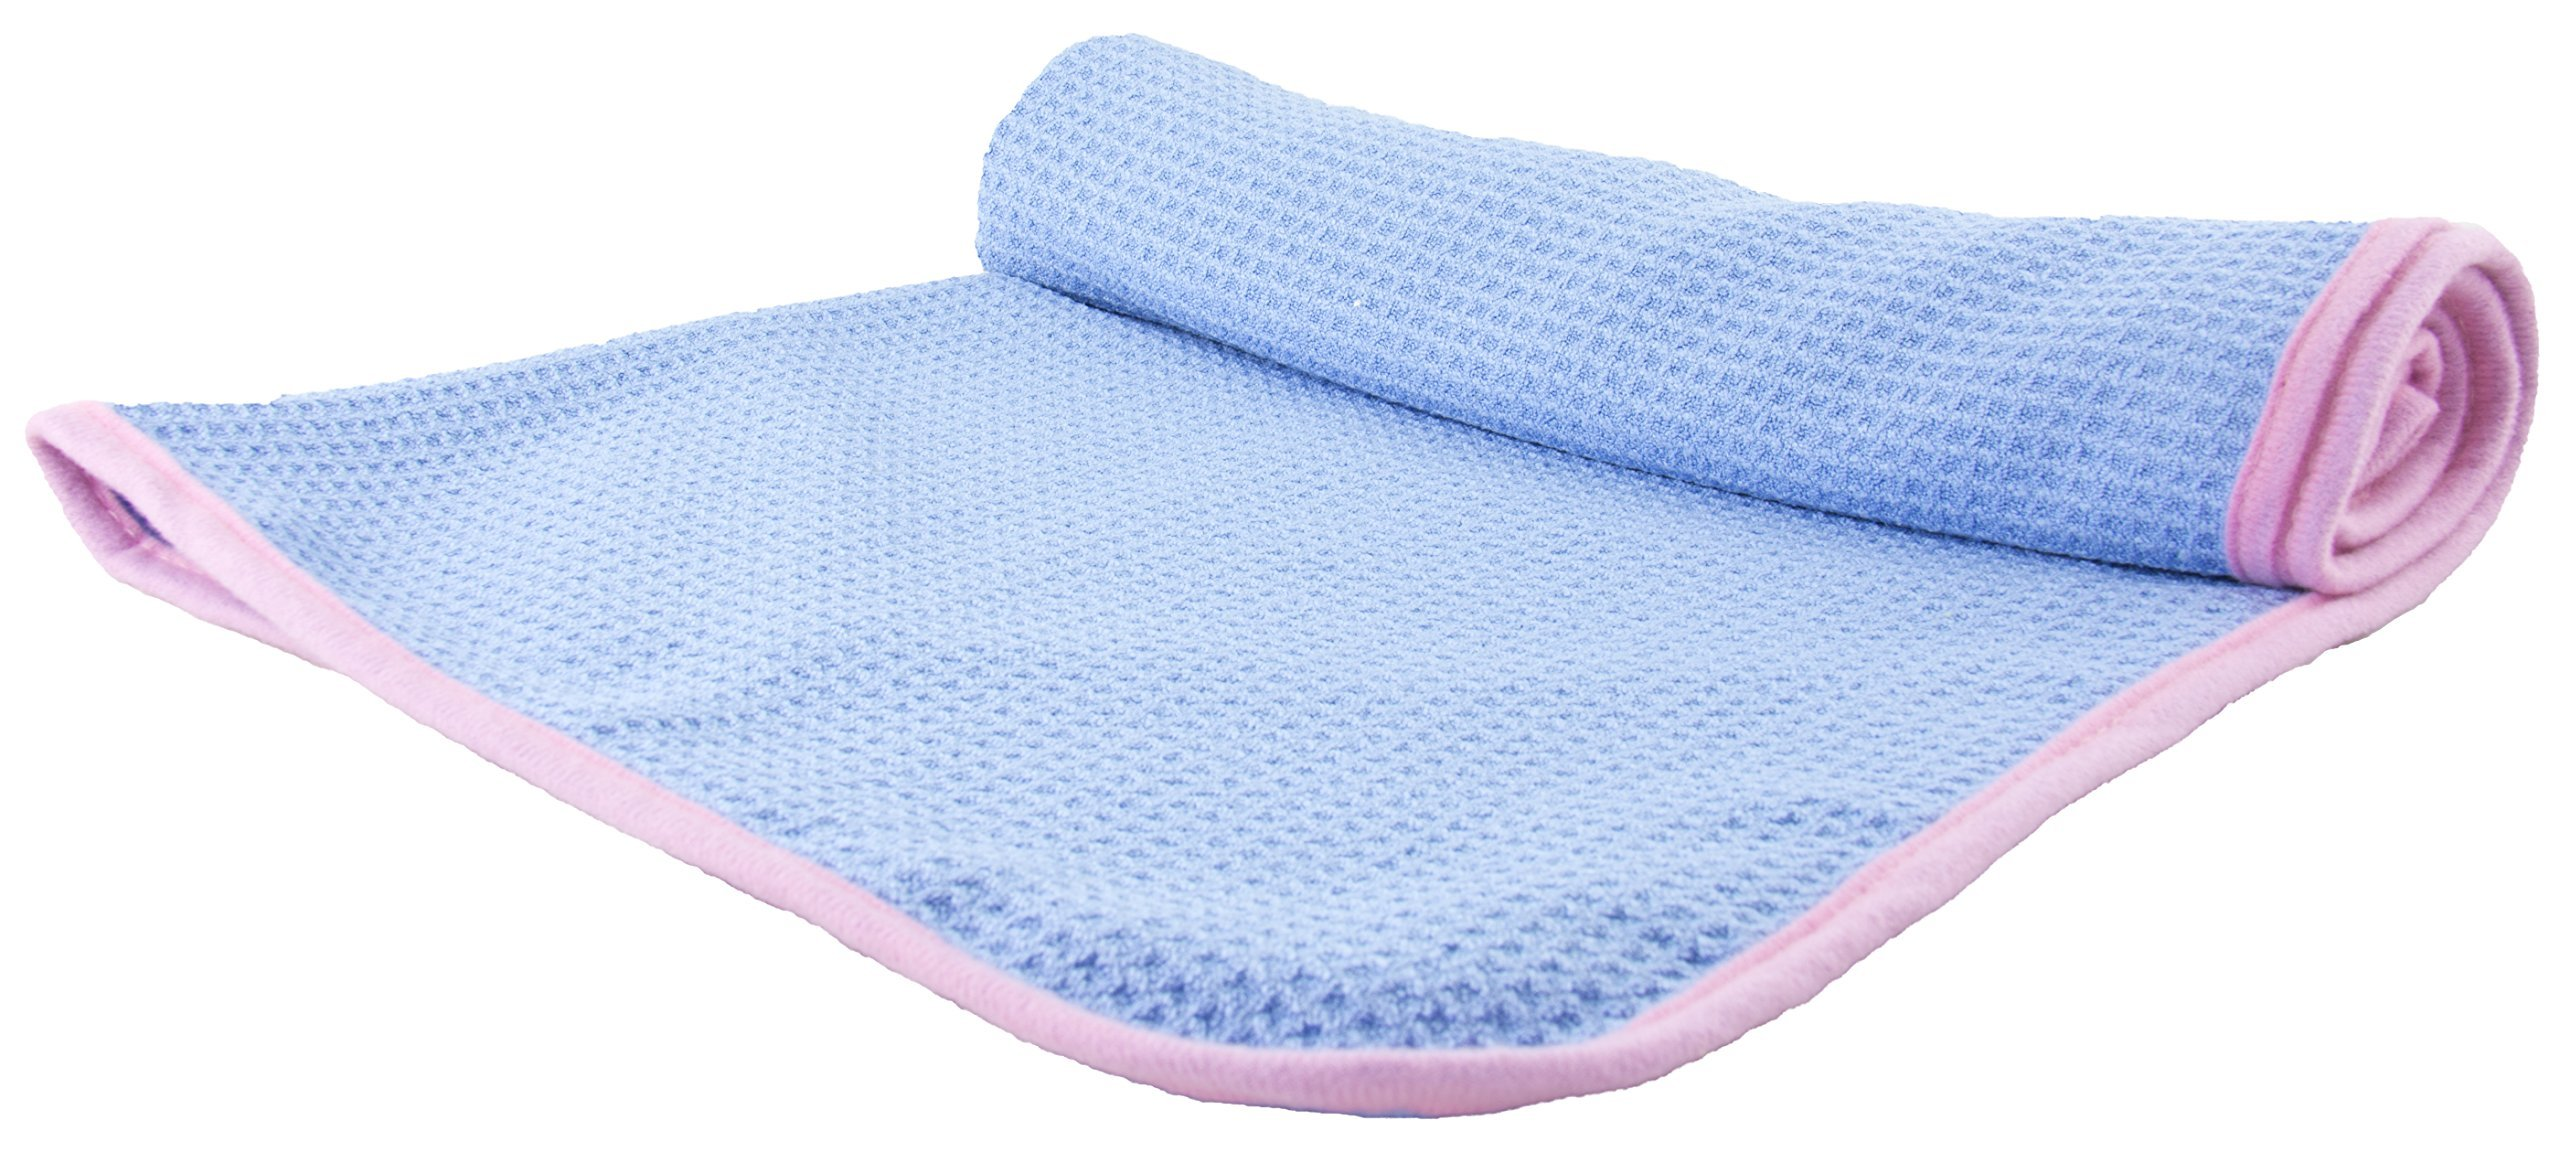 GigaWaffle Weave Microfiber Cleaning & Fast Drying Towel By Slush HD - Premium Quality 80% Polyester & 20% Polymide Blend - Soft & Highly Absorbent - 300GSM -38''X24'' Size - Light Blue & Pink